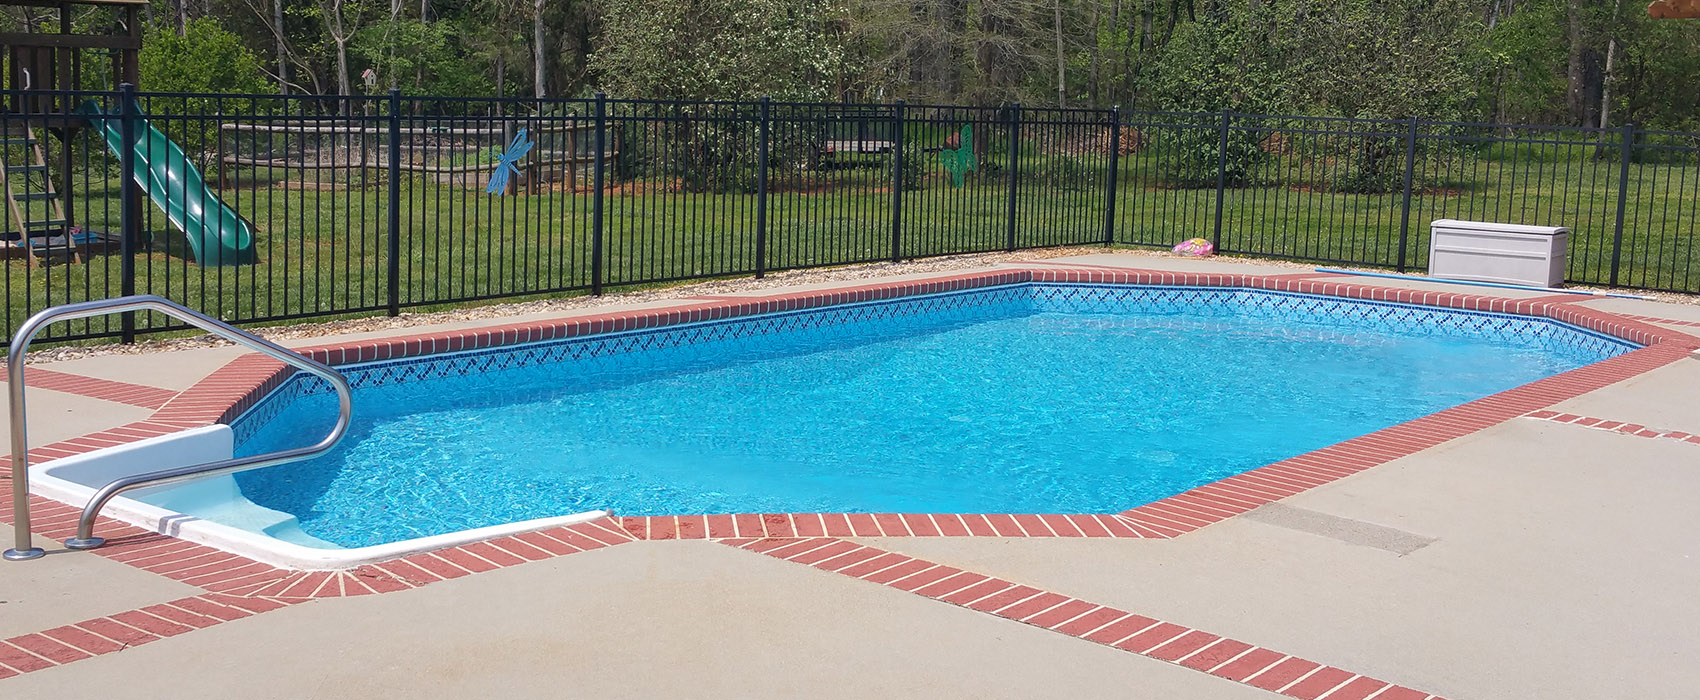 McEwen Industries Hottest New Swimming Pool InGround Vinyl Liner Pattern  Pence